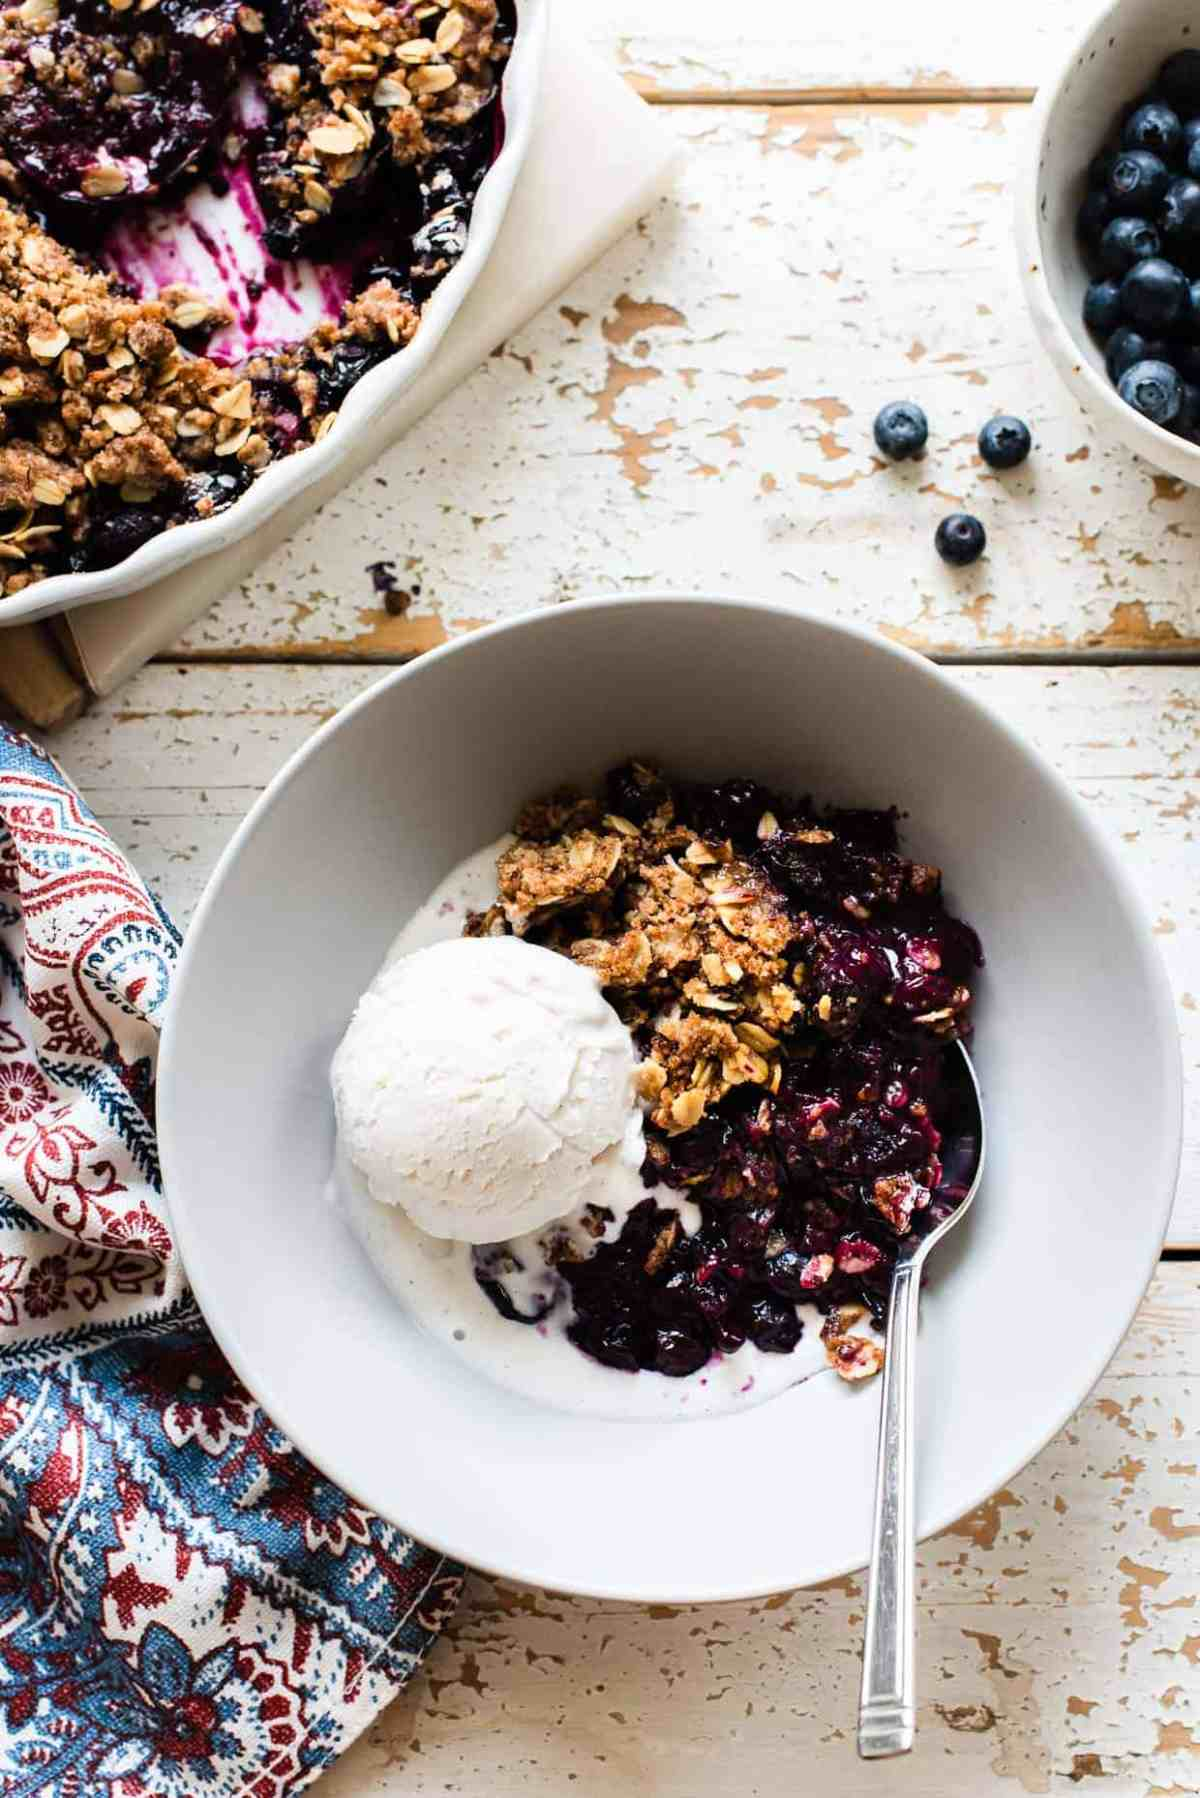 A white bowl filled with blueberry crisp and a scoop of vanilla ice cream on a rustic surface.